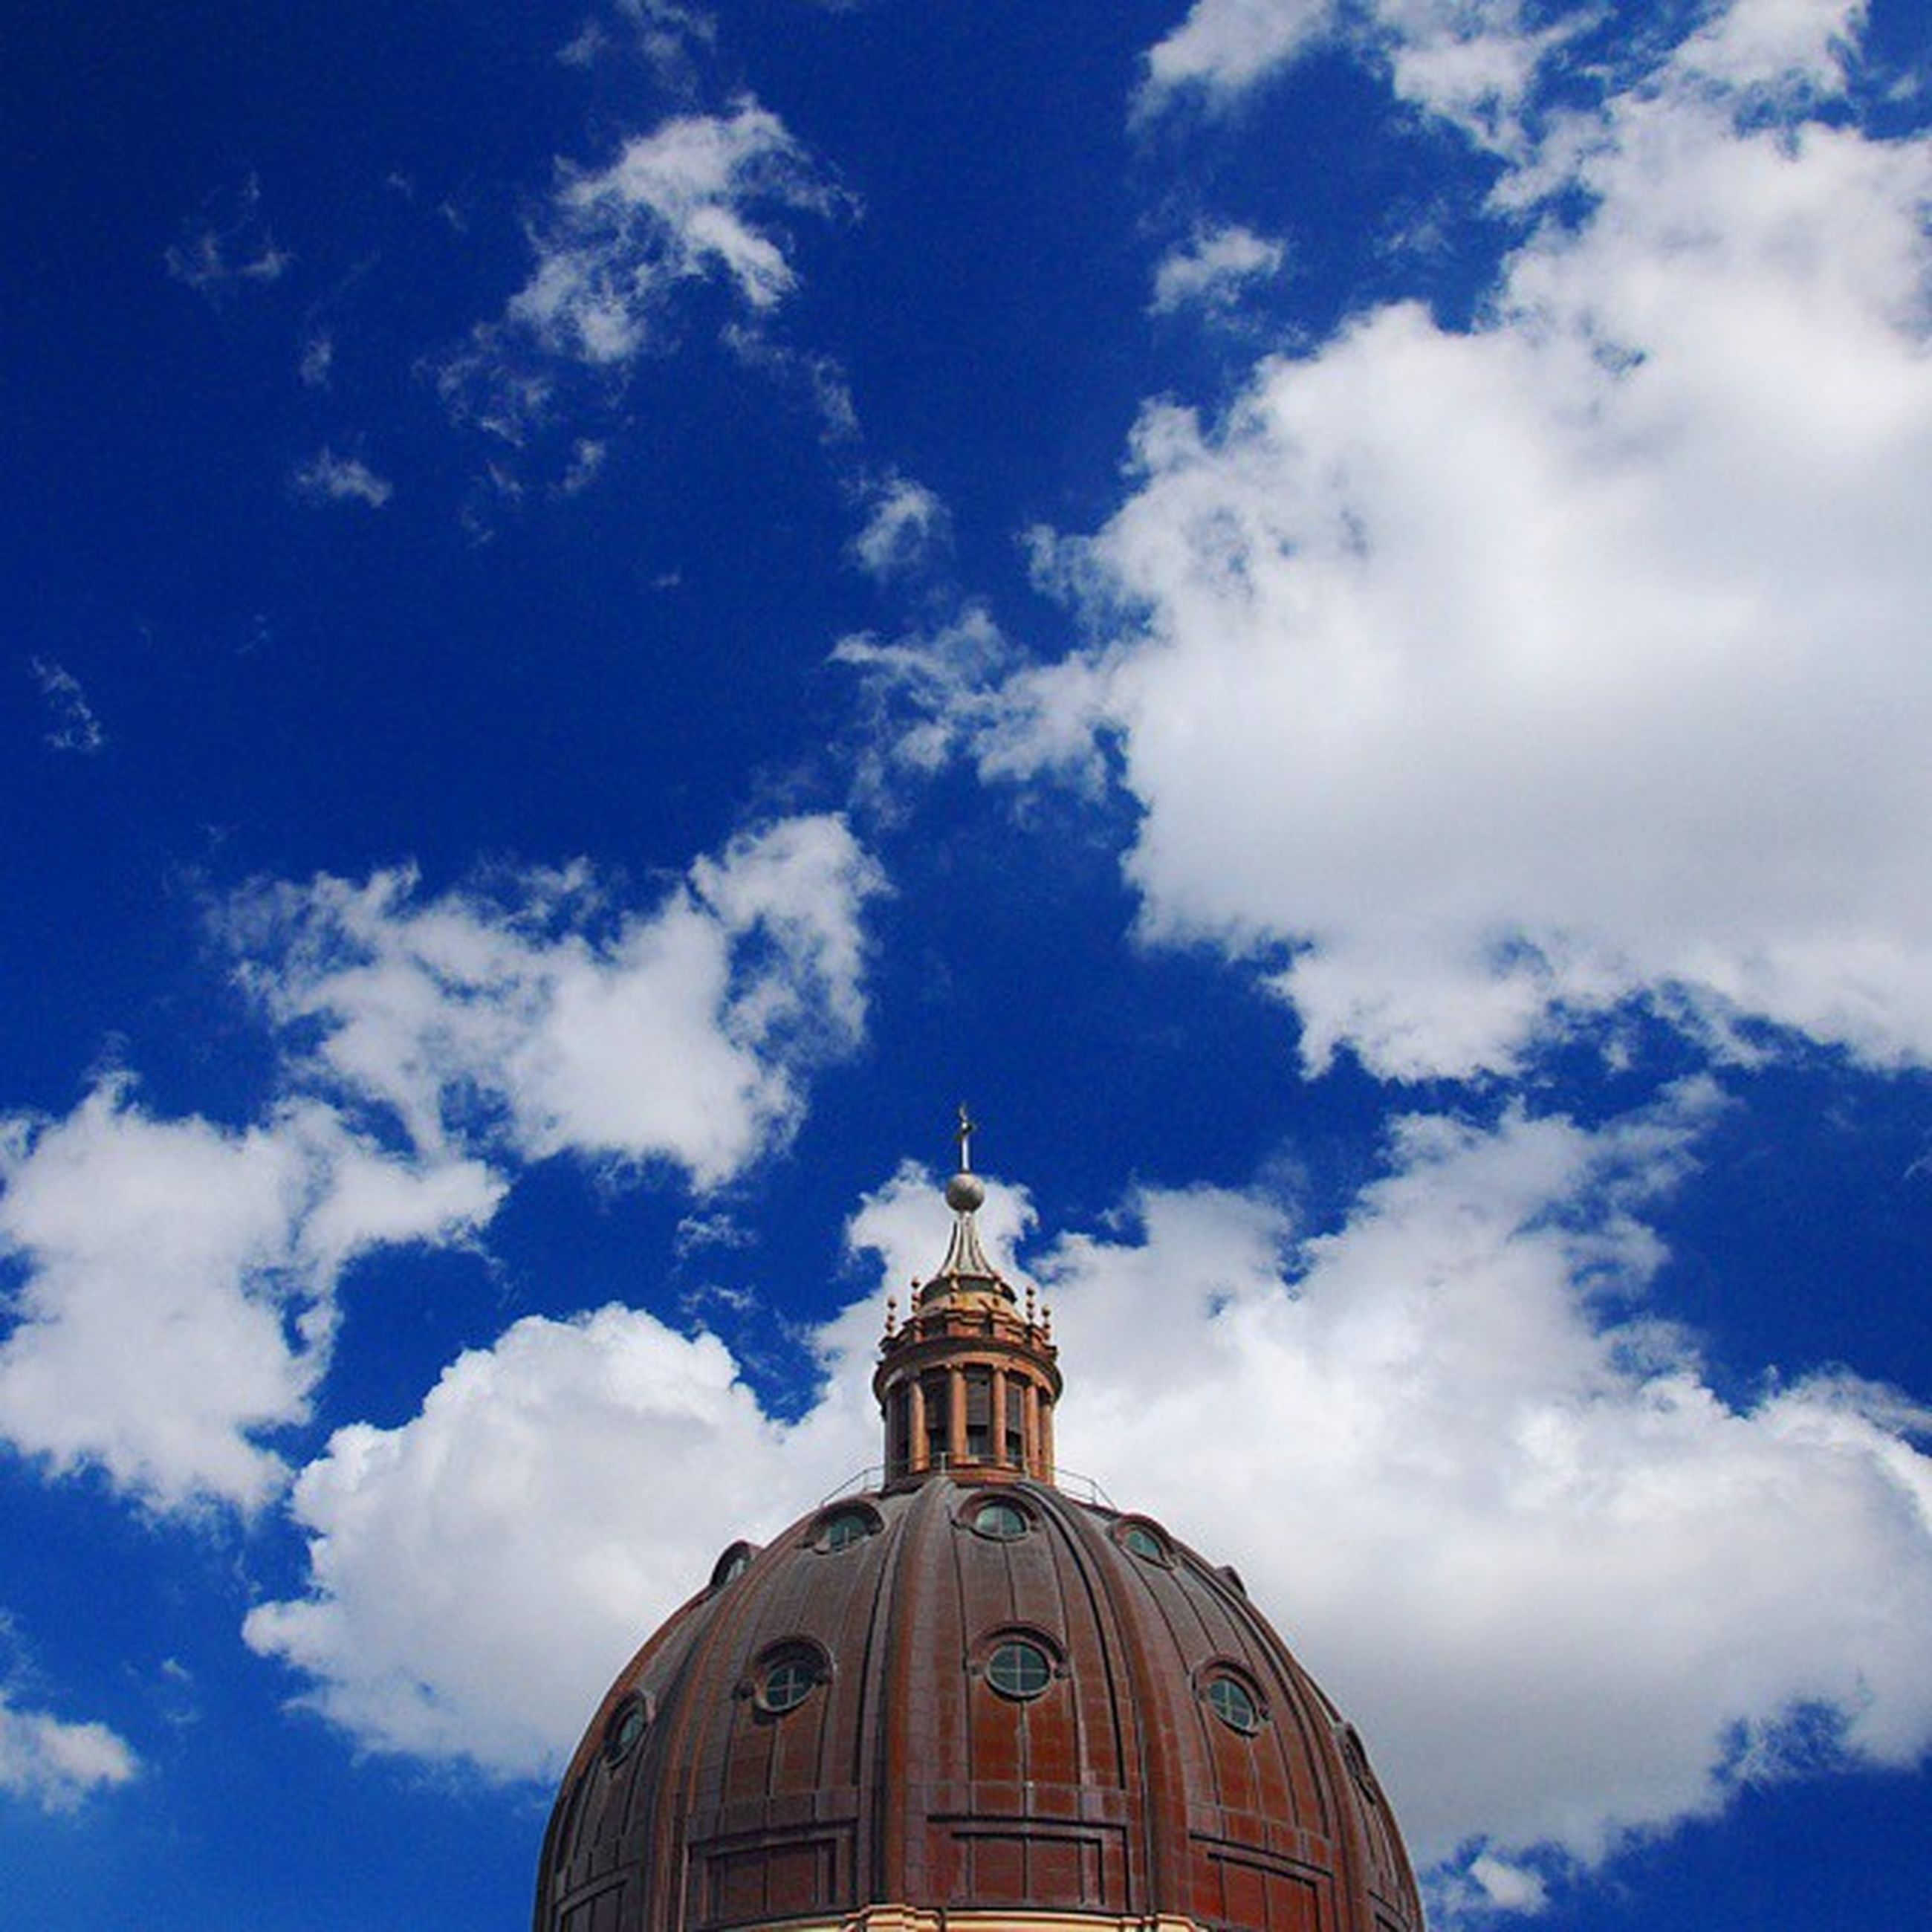 building exterior, low angle view, architecture, built structure, place of worship, church, religion, sky, dome, spirituality, high section, blue, cloud - sky, cathedral, cloud, cross, outdoors, day